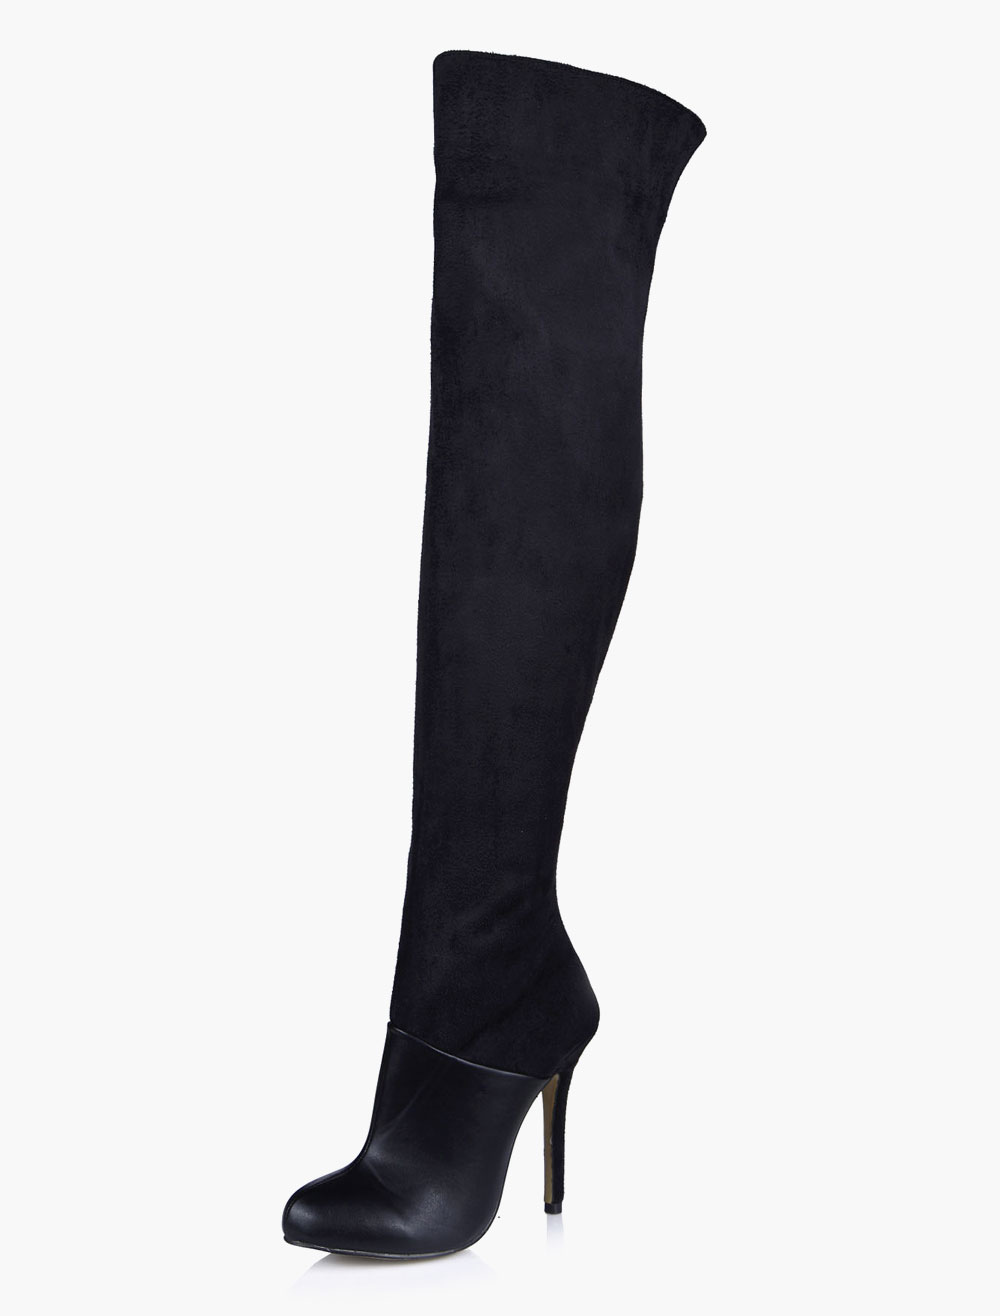 Thigh High Boots Black High Heel Over Knee Boots